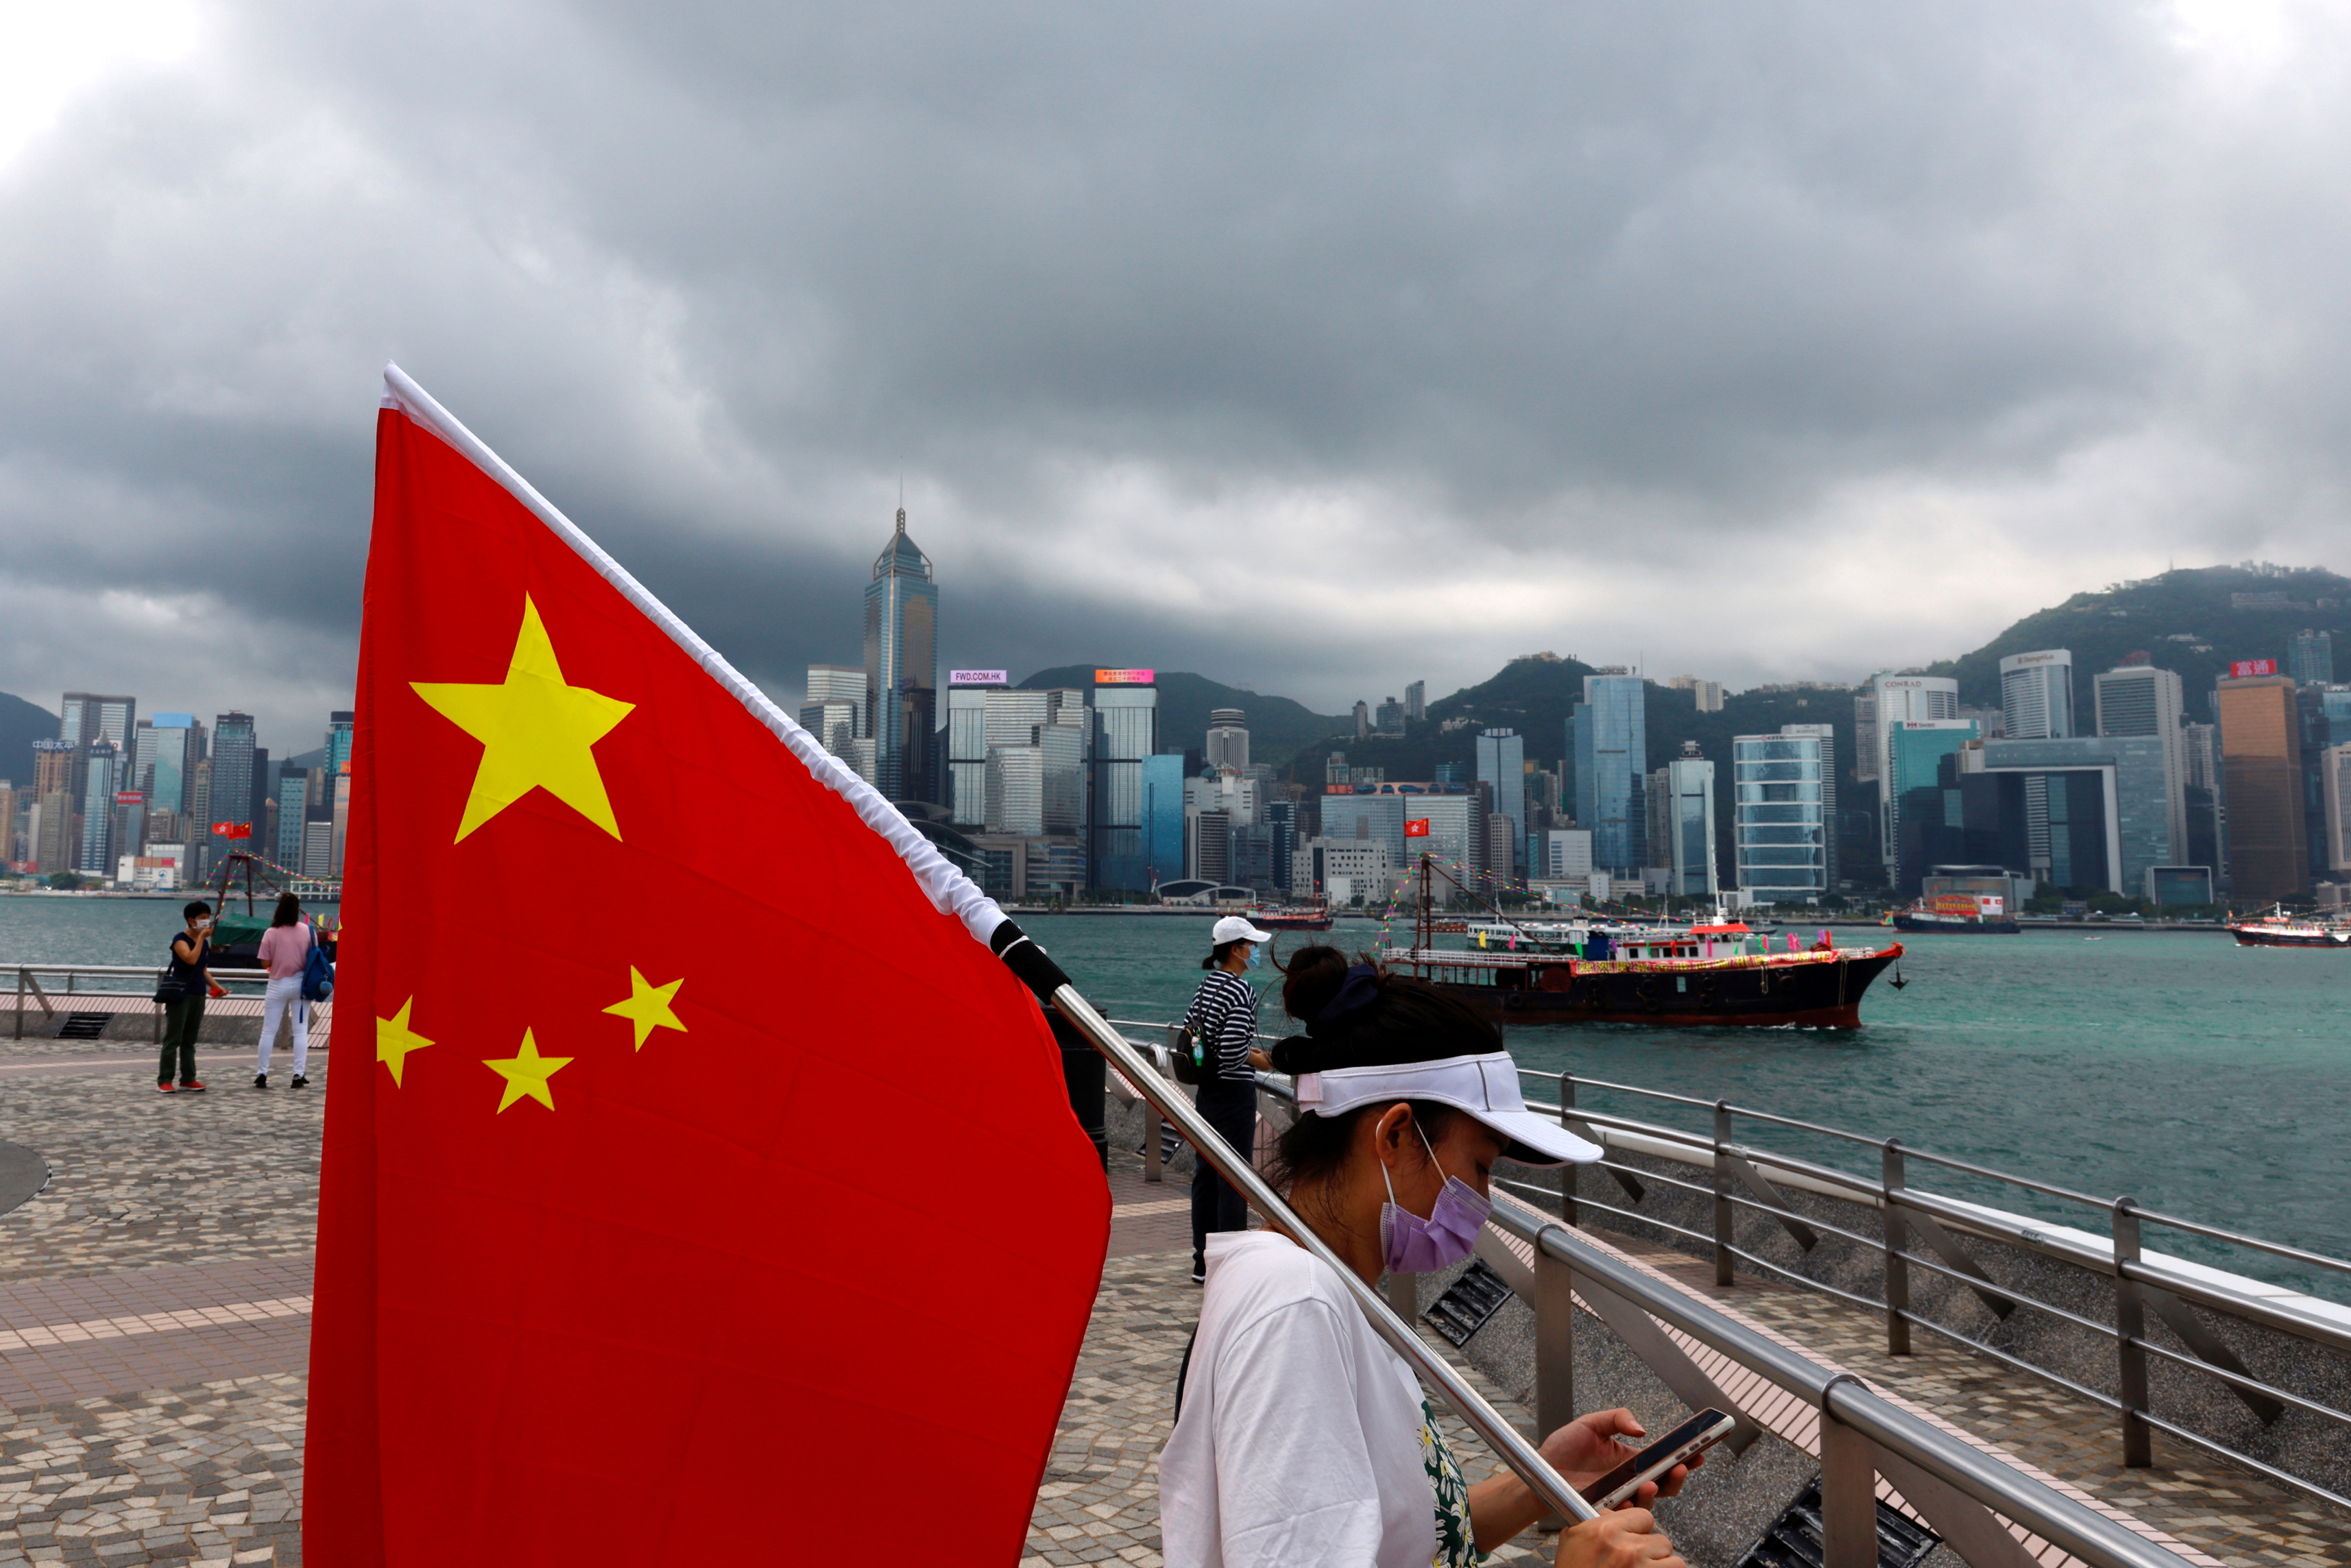 A pro-China supporter holds a Chinese flag to celebrate the 24th anniversary of the former British colony's return to Chinese rule, on the 100th founding anniversary of the Communist Party of China, in Hong Kong, China July 1, 2021. REUTERS/Tyrone Siu